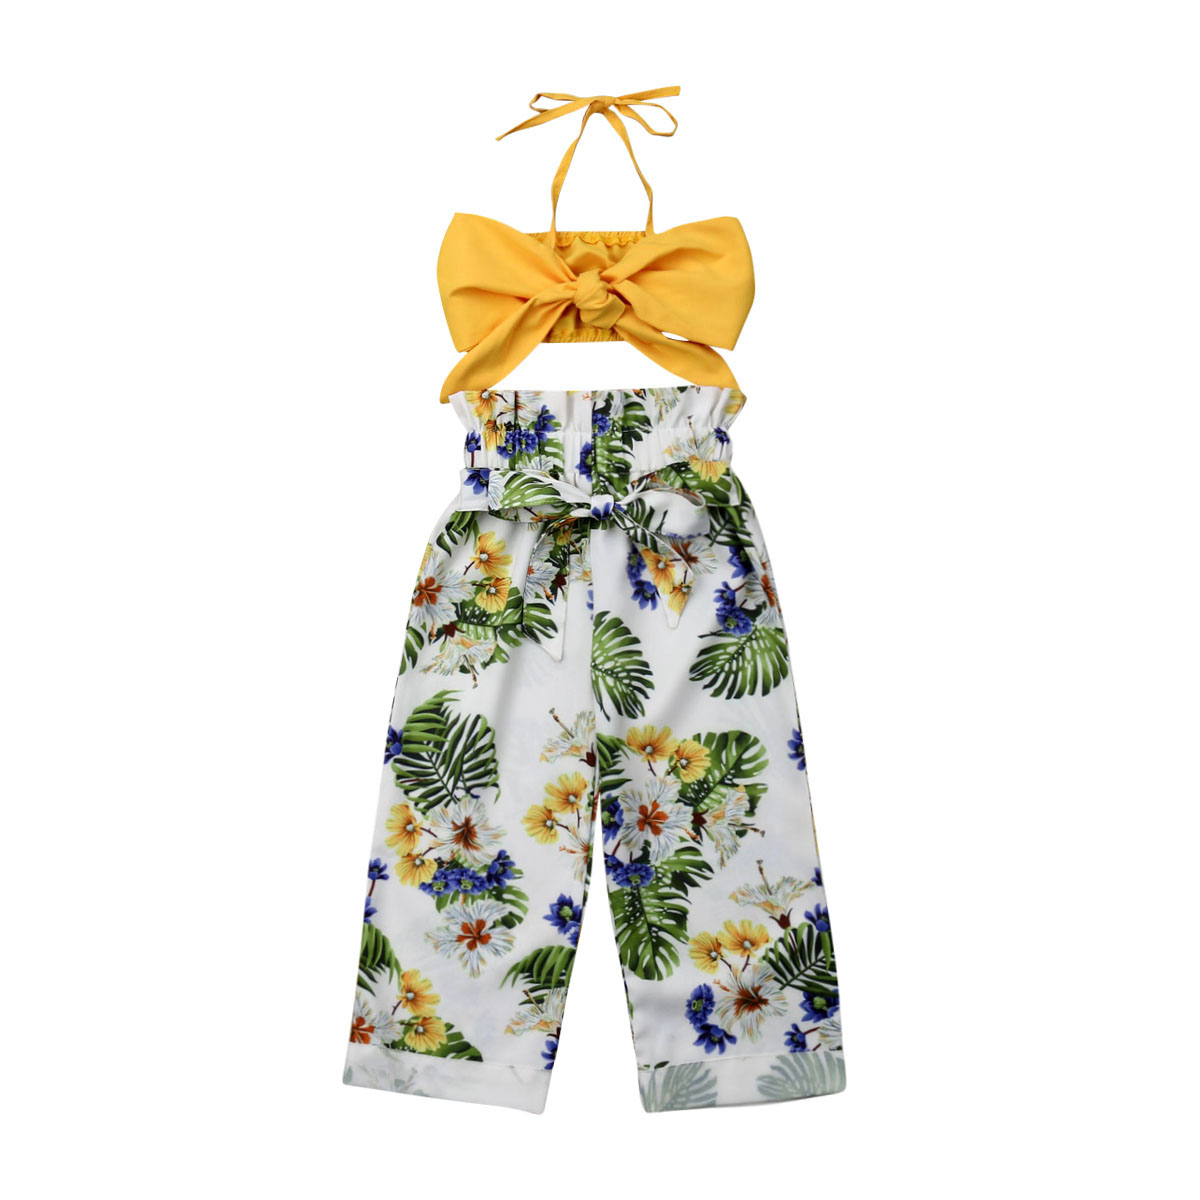 Toddler Kids Baby Girls Outfits Clothes Crop Tops +Floral Long Pants Summer Sets